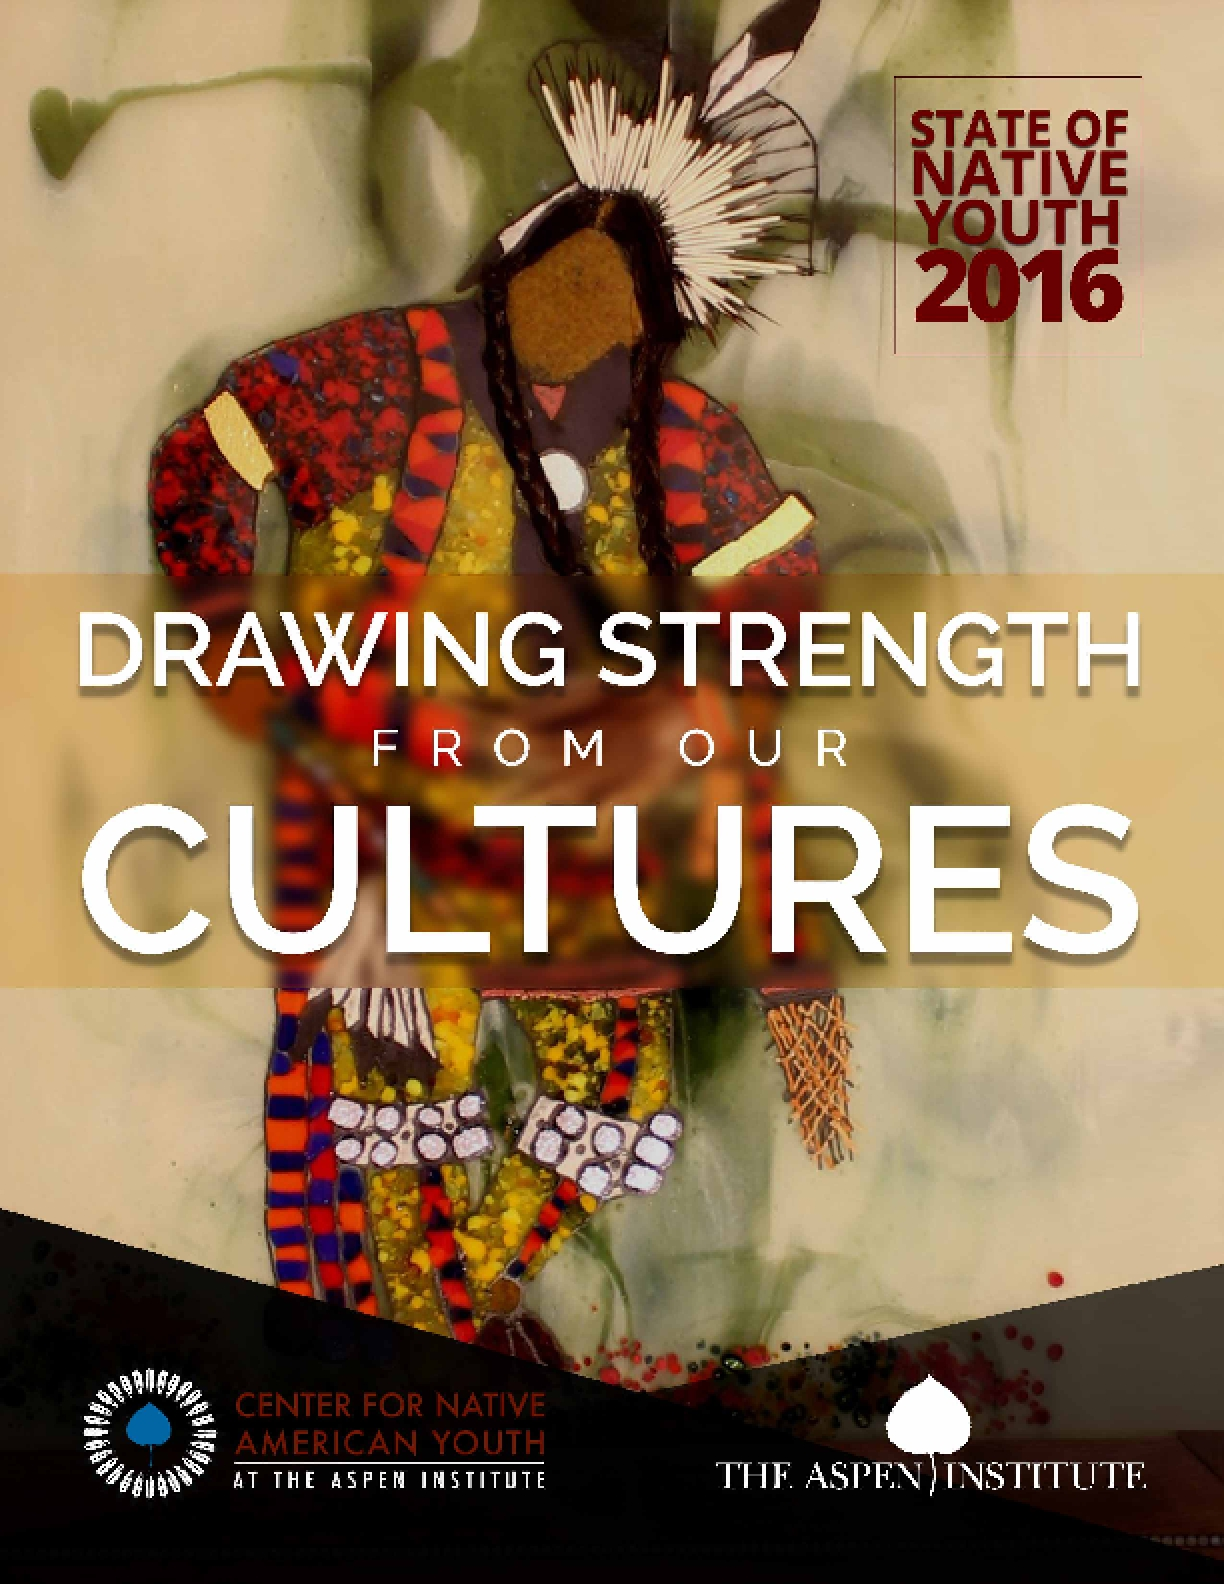 Drawing Strength From Our Cultures: The State of Native Youth 2016